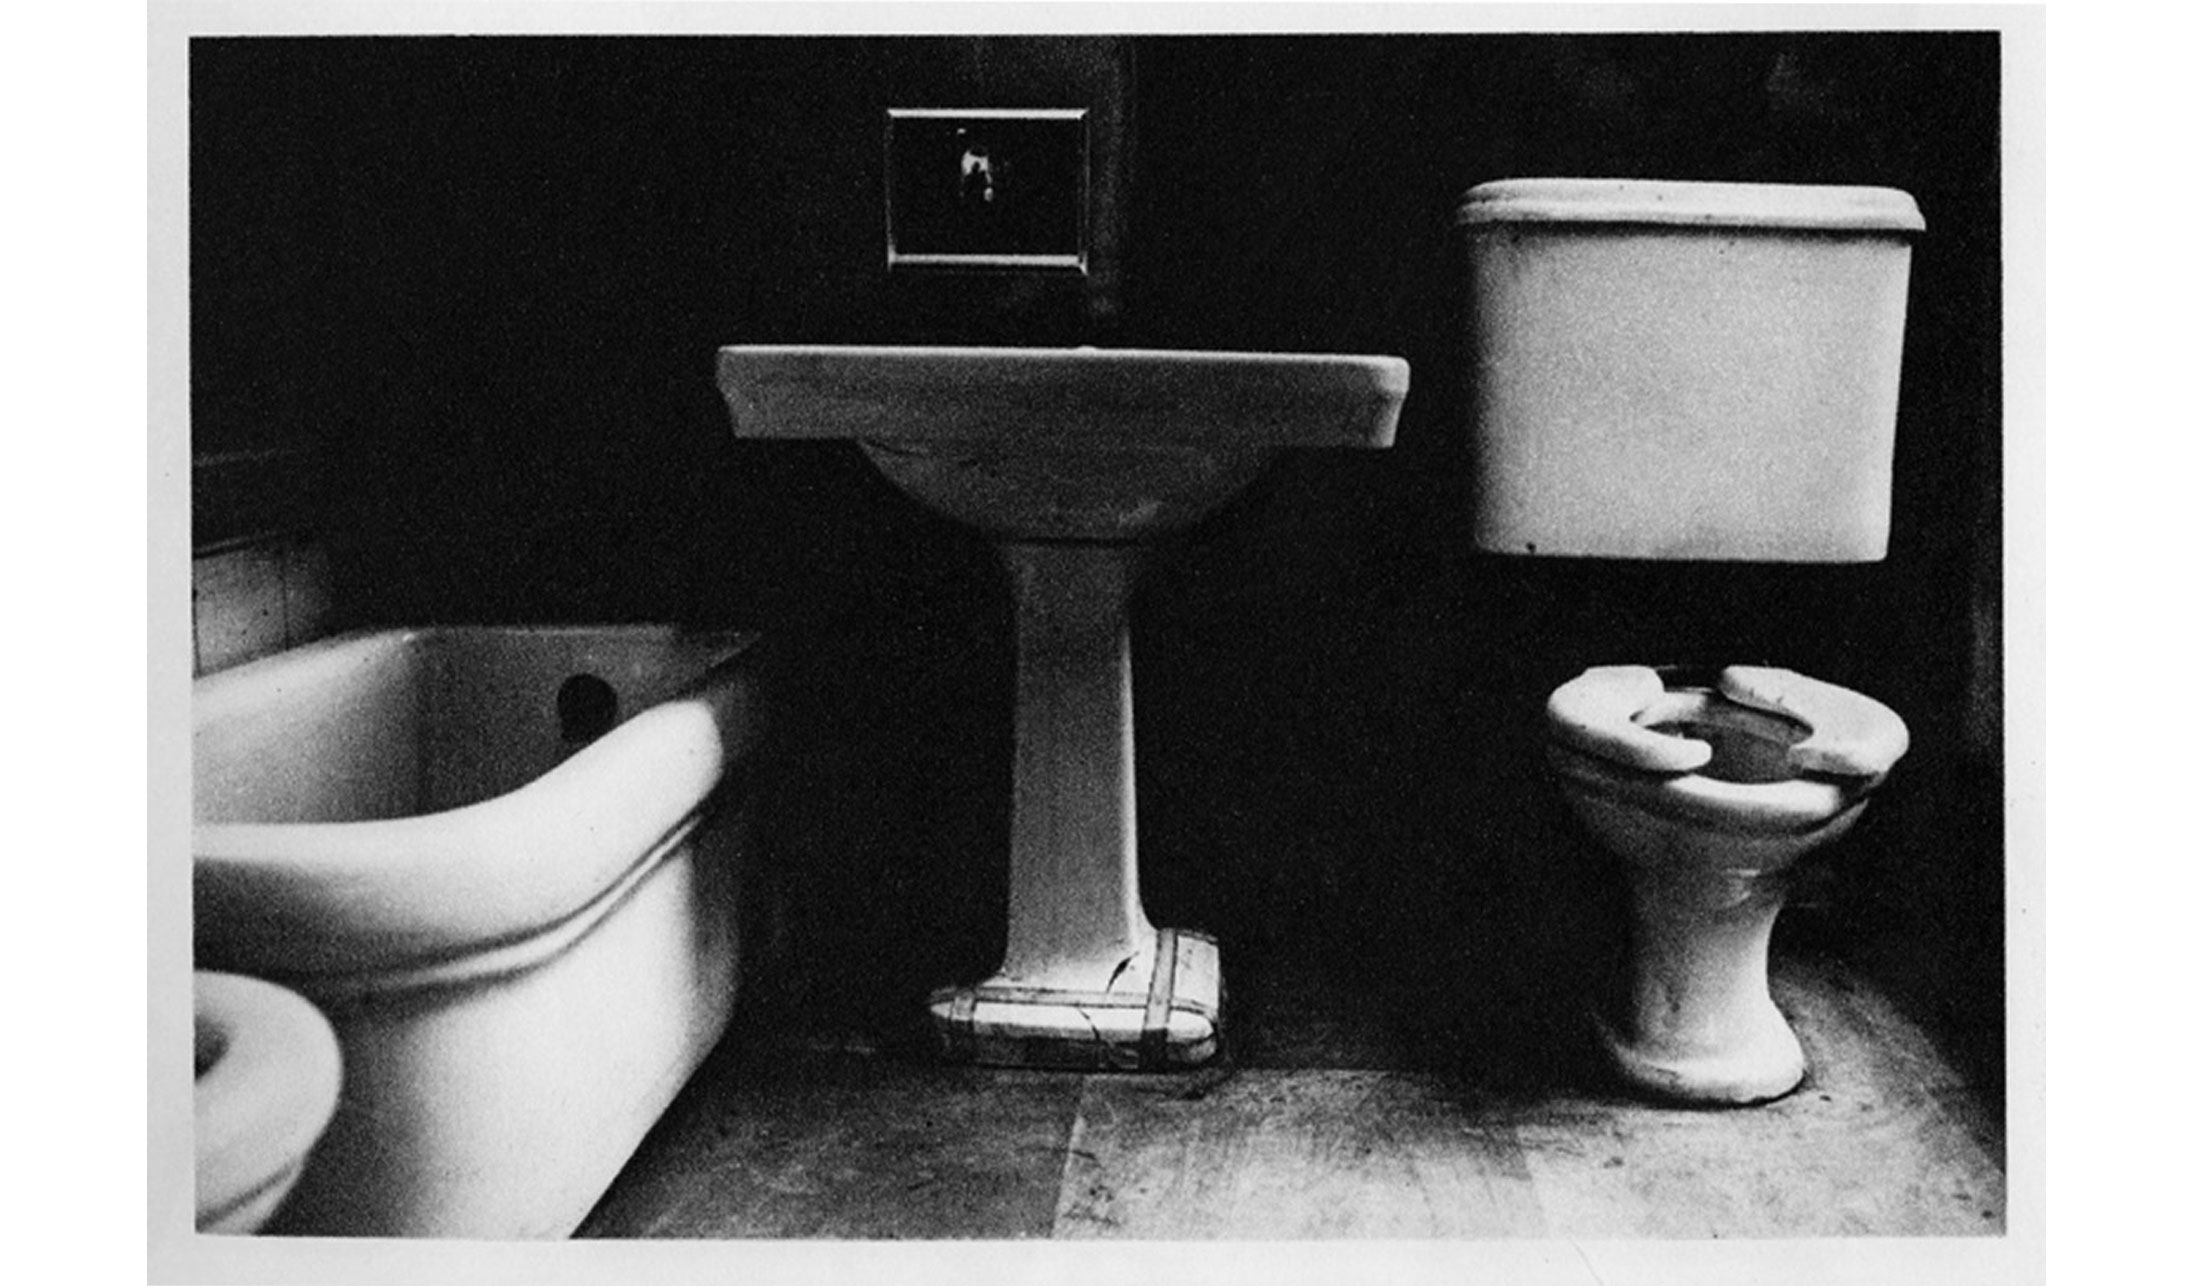 Duane-Michals-Things-are-Queer-Les-choses-sont-bizarres-1973-sequence-photo-09